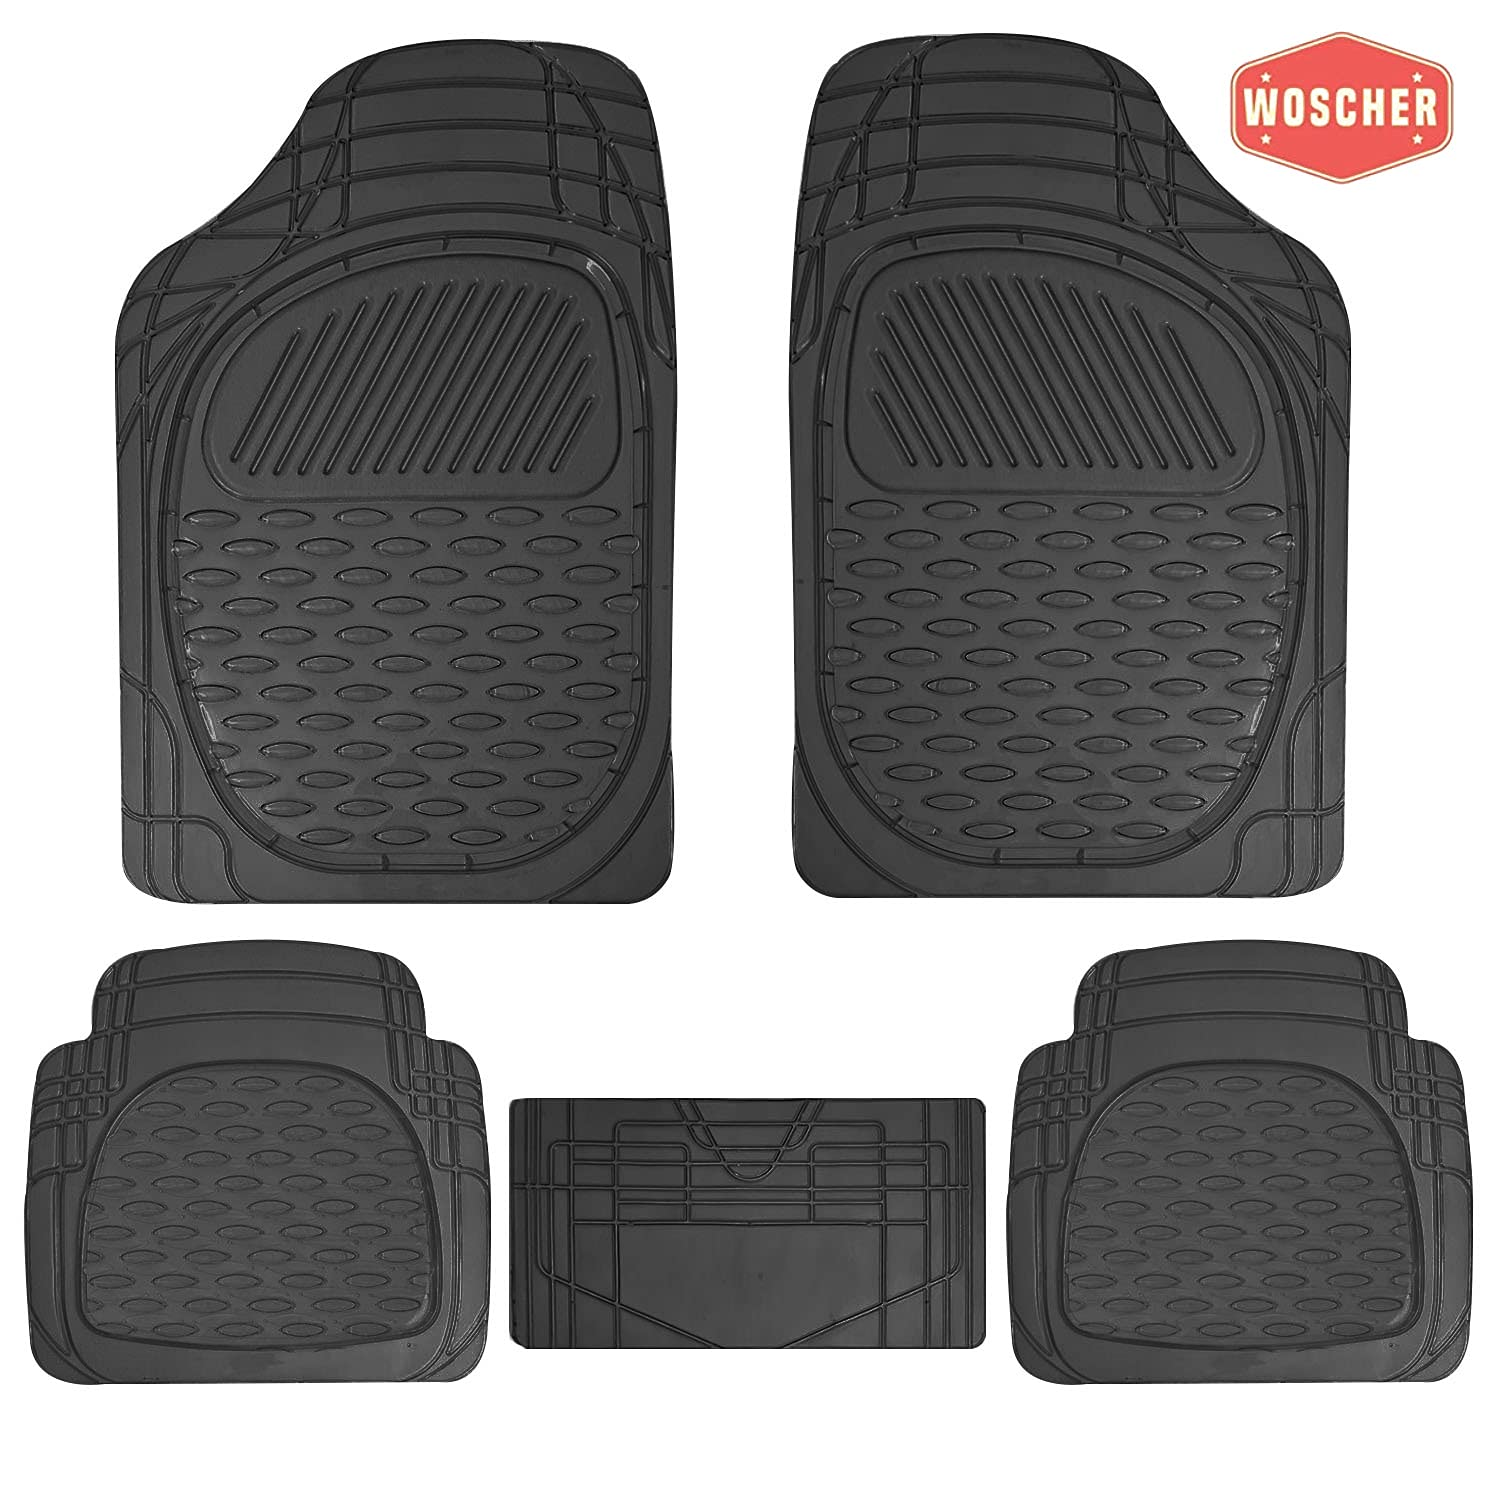 woscher-6255-felxtough-all-season-rubber-floor-car-mat-for-car-suv-universal-self-cut-to-perfectly-fit-black